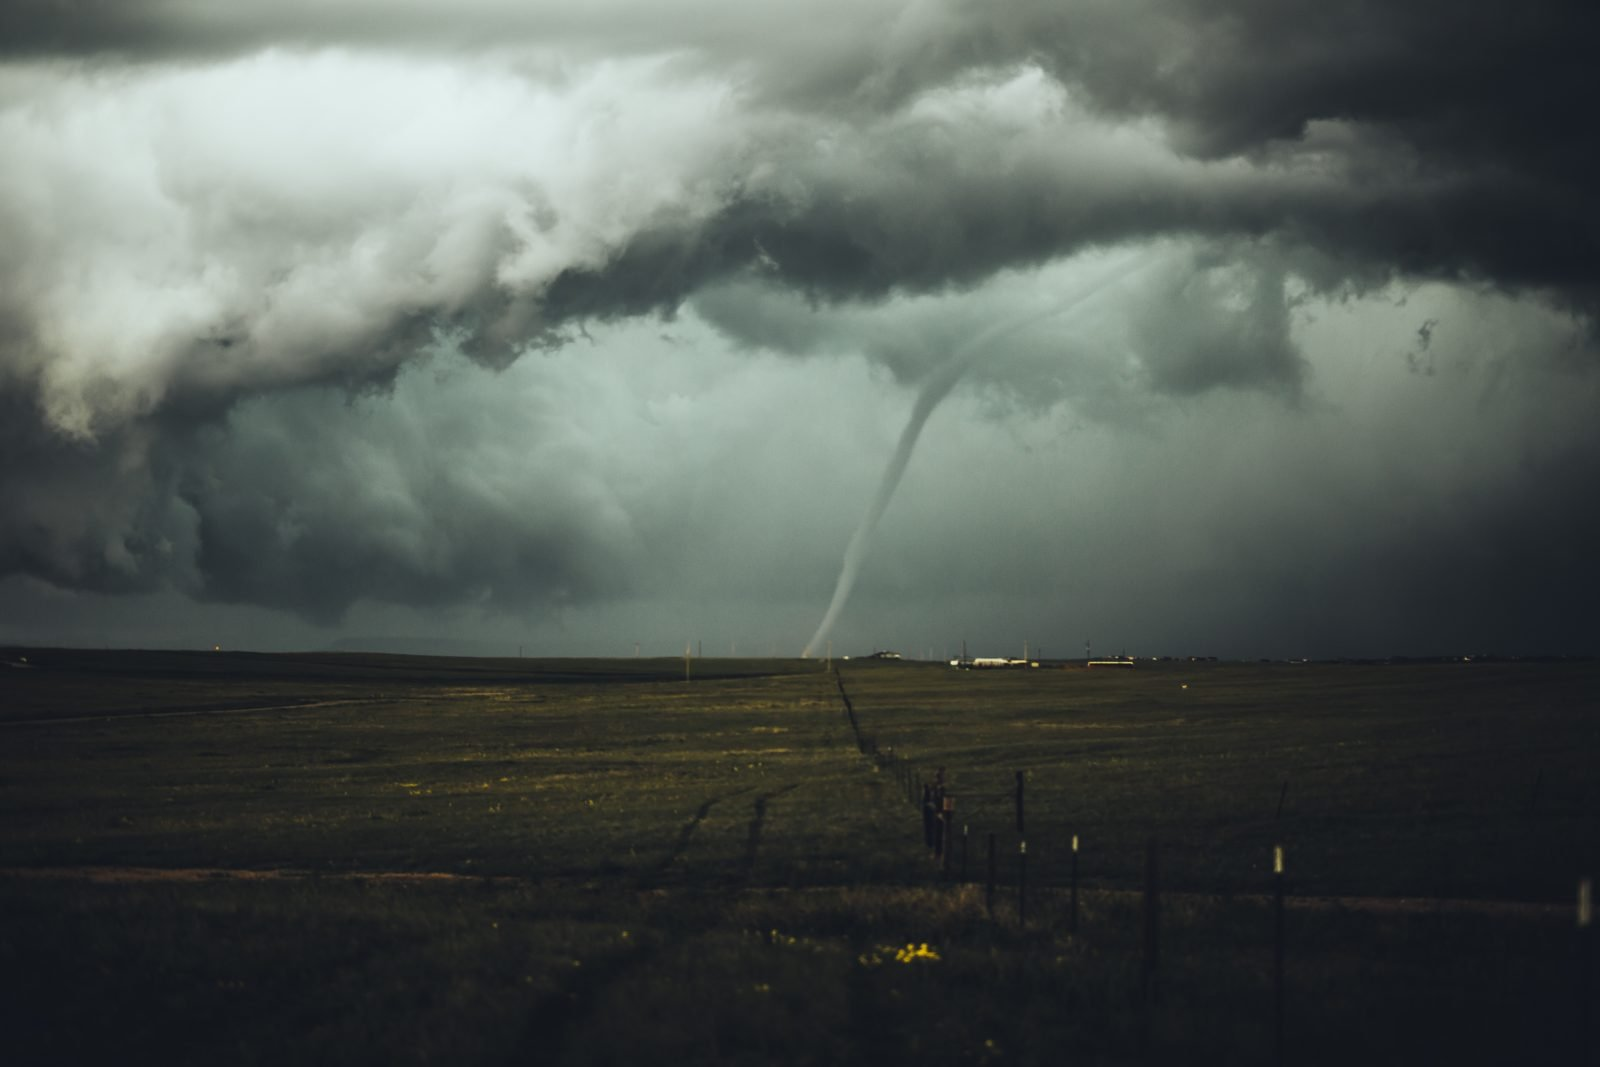 MANUFACTURED HOMES SAFE IN TORNADOES